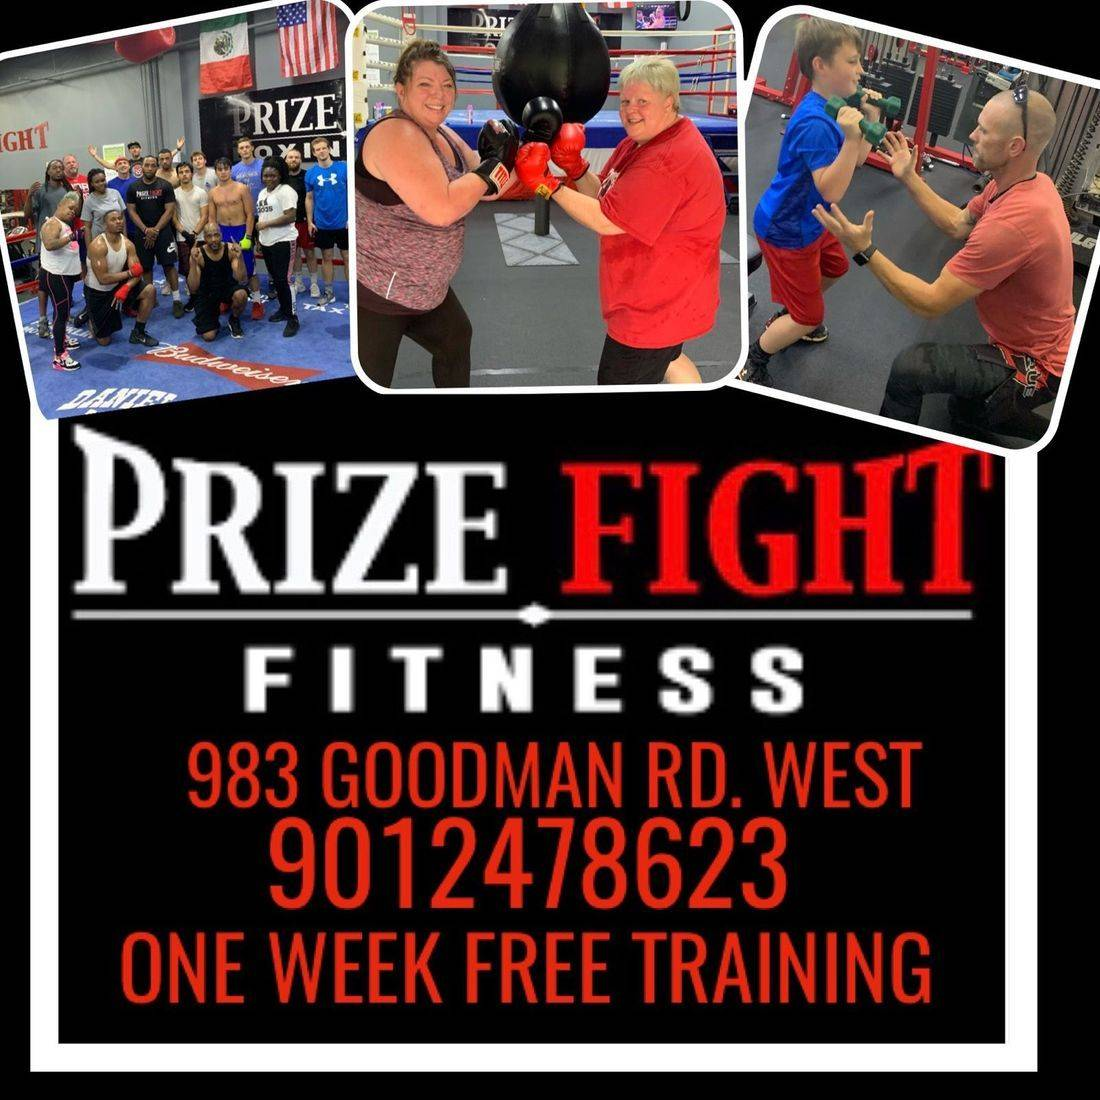 prize fight fitness weight training